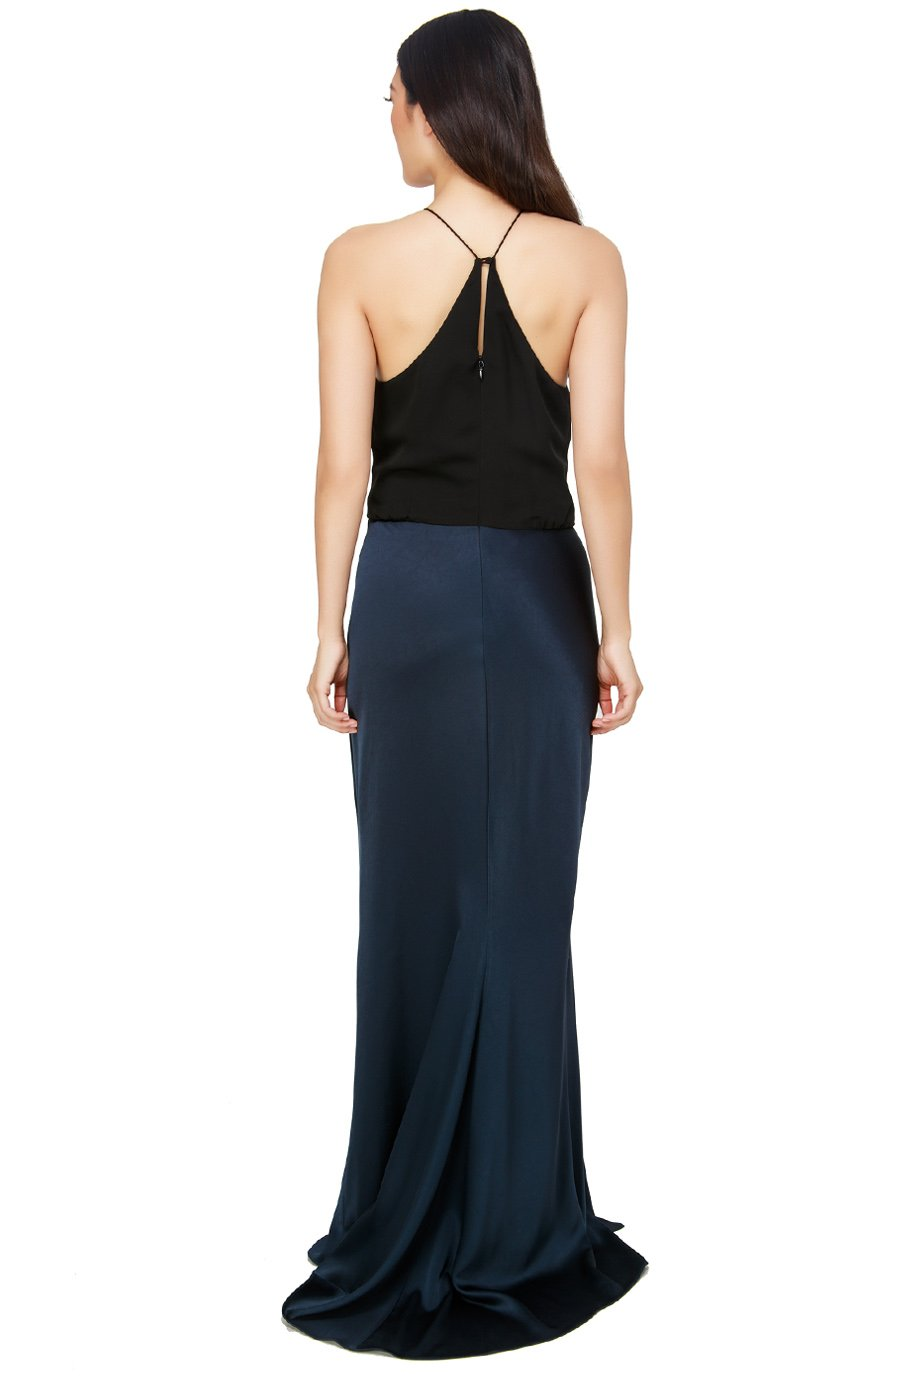 Halston Heritage Navy Blue Twist Drape Georgette Satin Gown